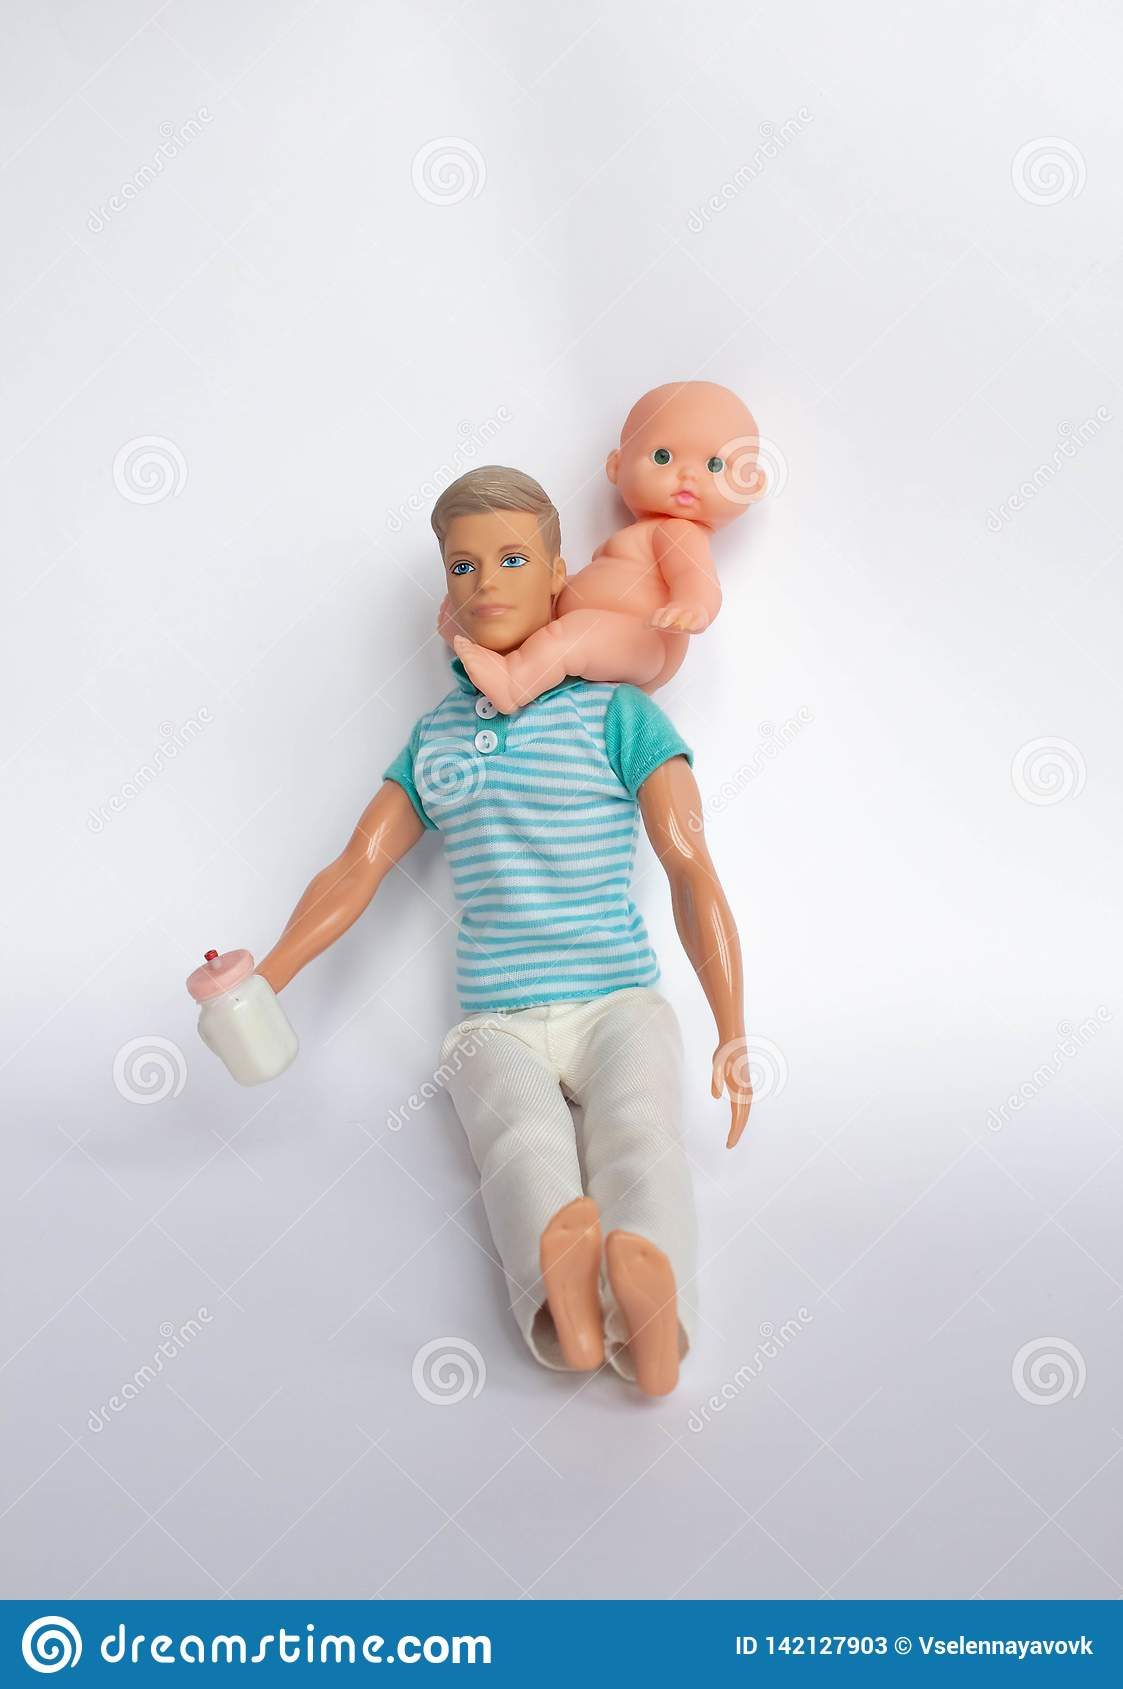 Father and son, dolls on a white background, father holds son in his arms, feeds his son. Caring for the family